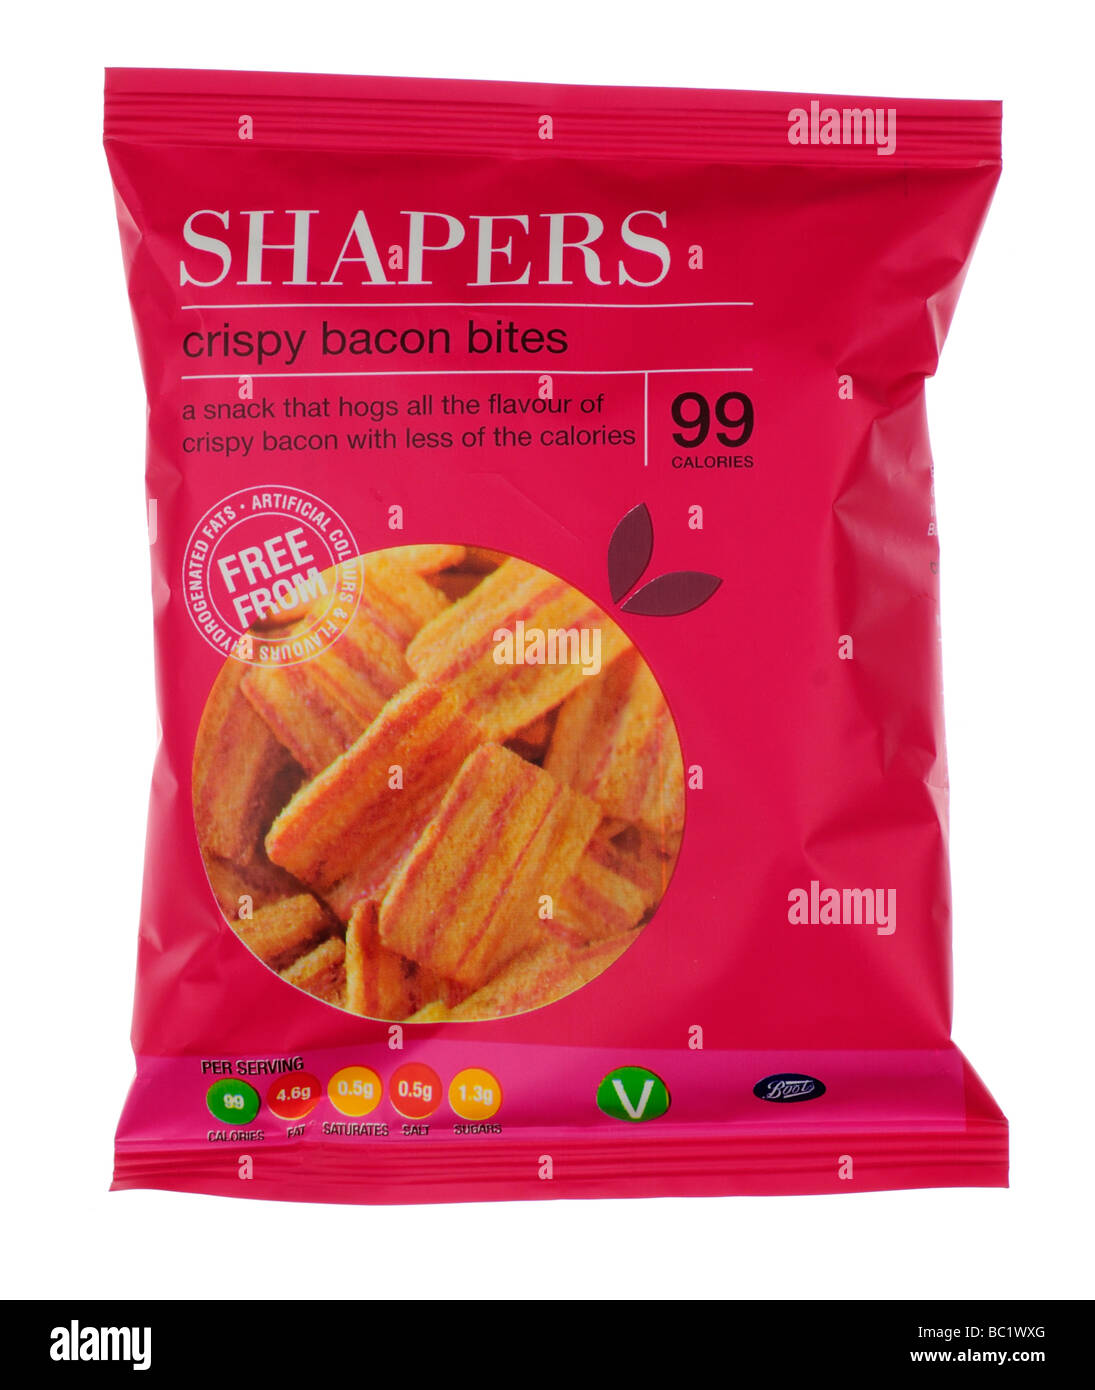 Packet of Boots Shapers Crisps - Stock Image